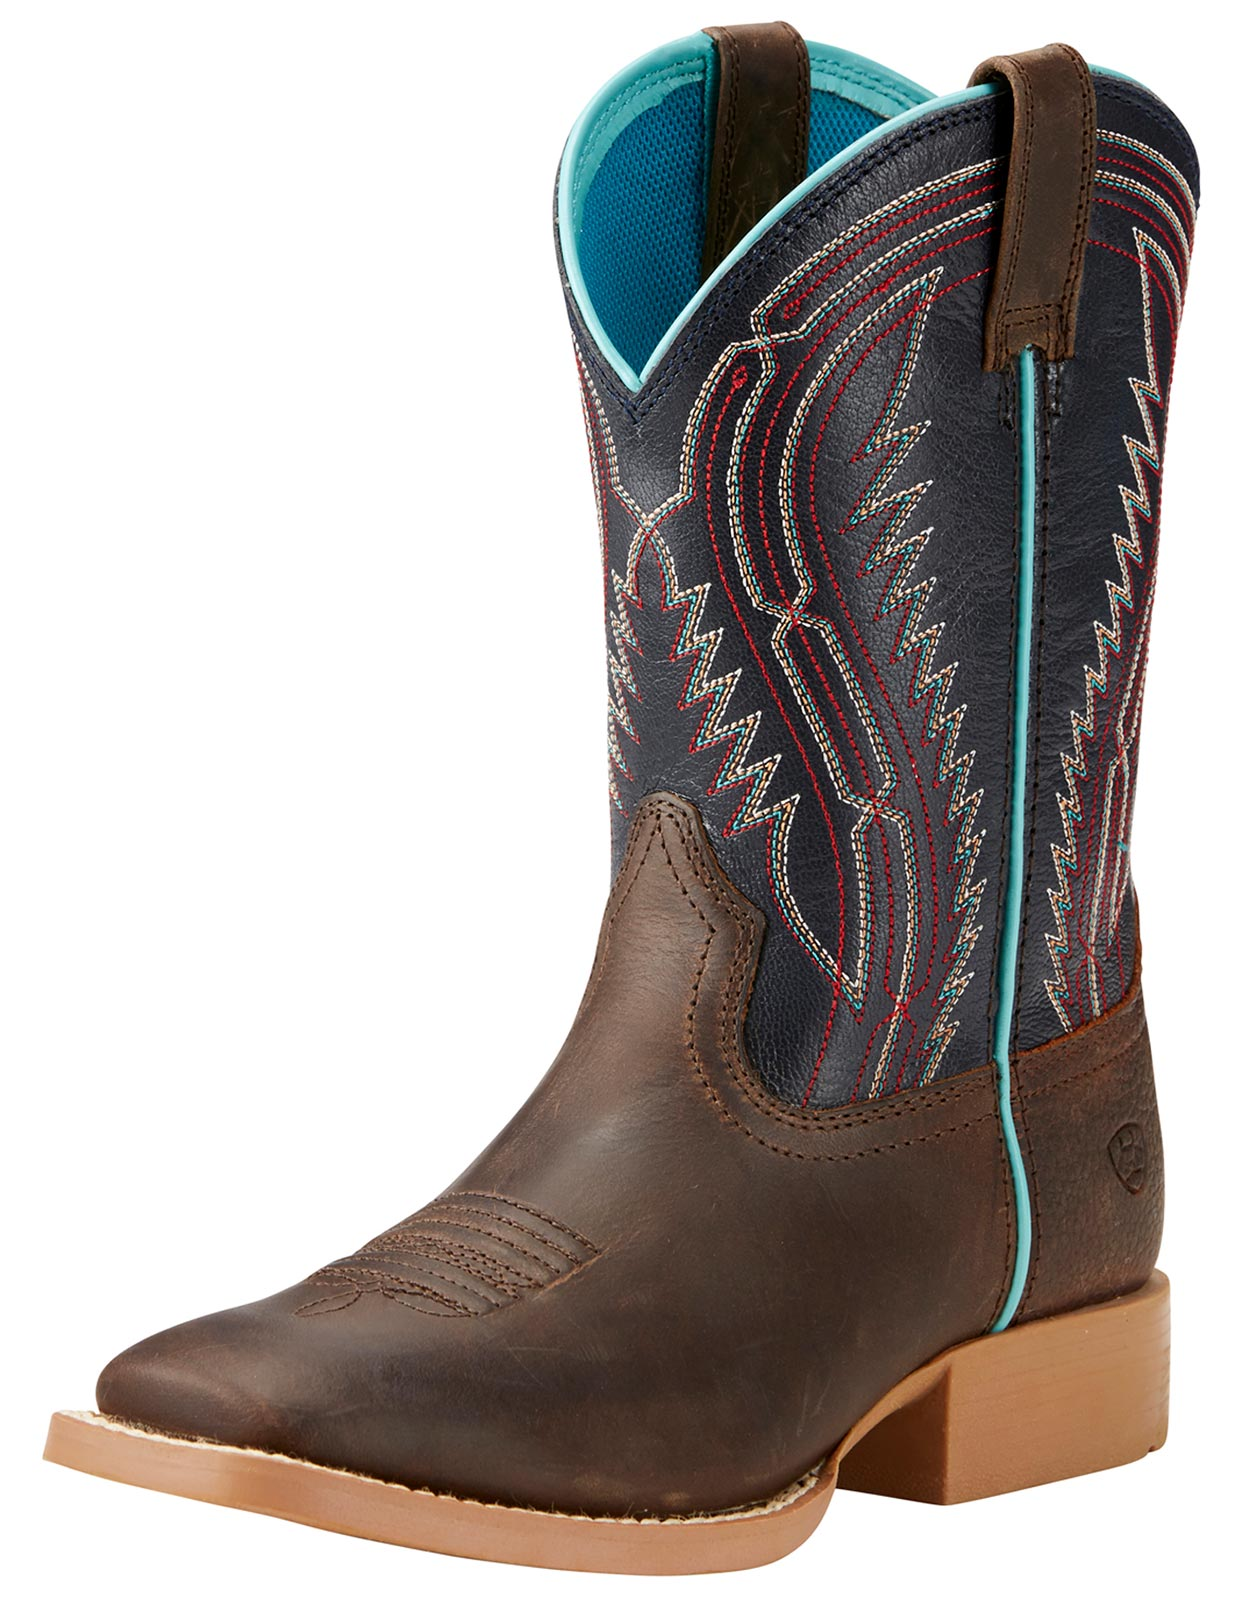 Ariat Children's Chute Boss Square Toe Cowboy Boots - Brown